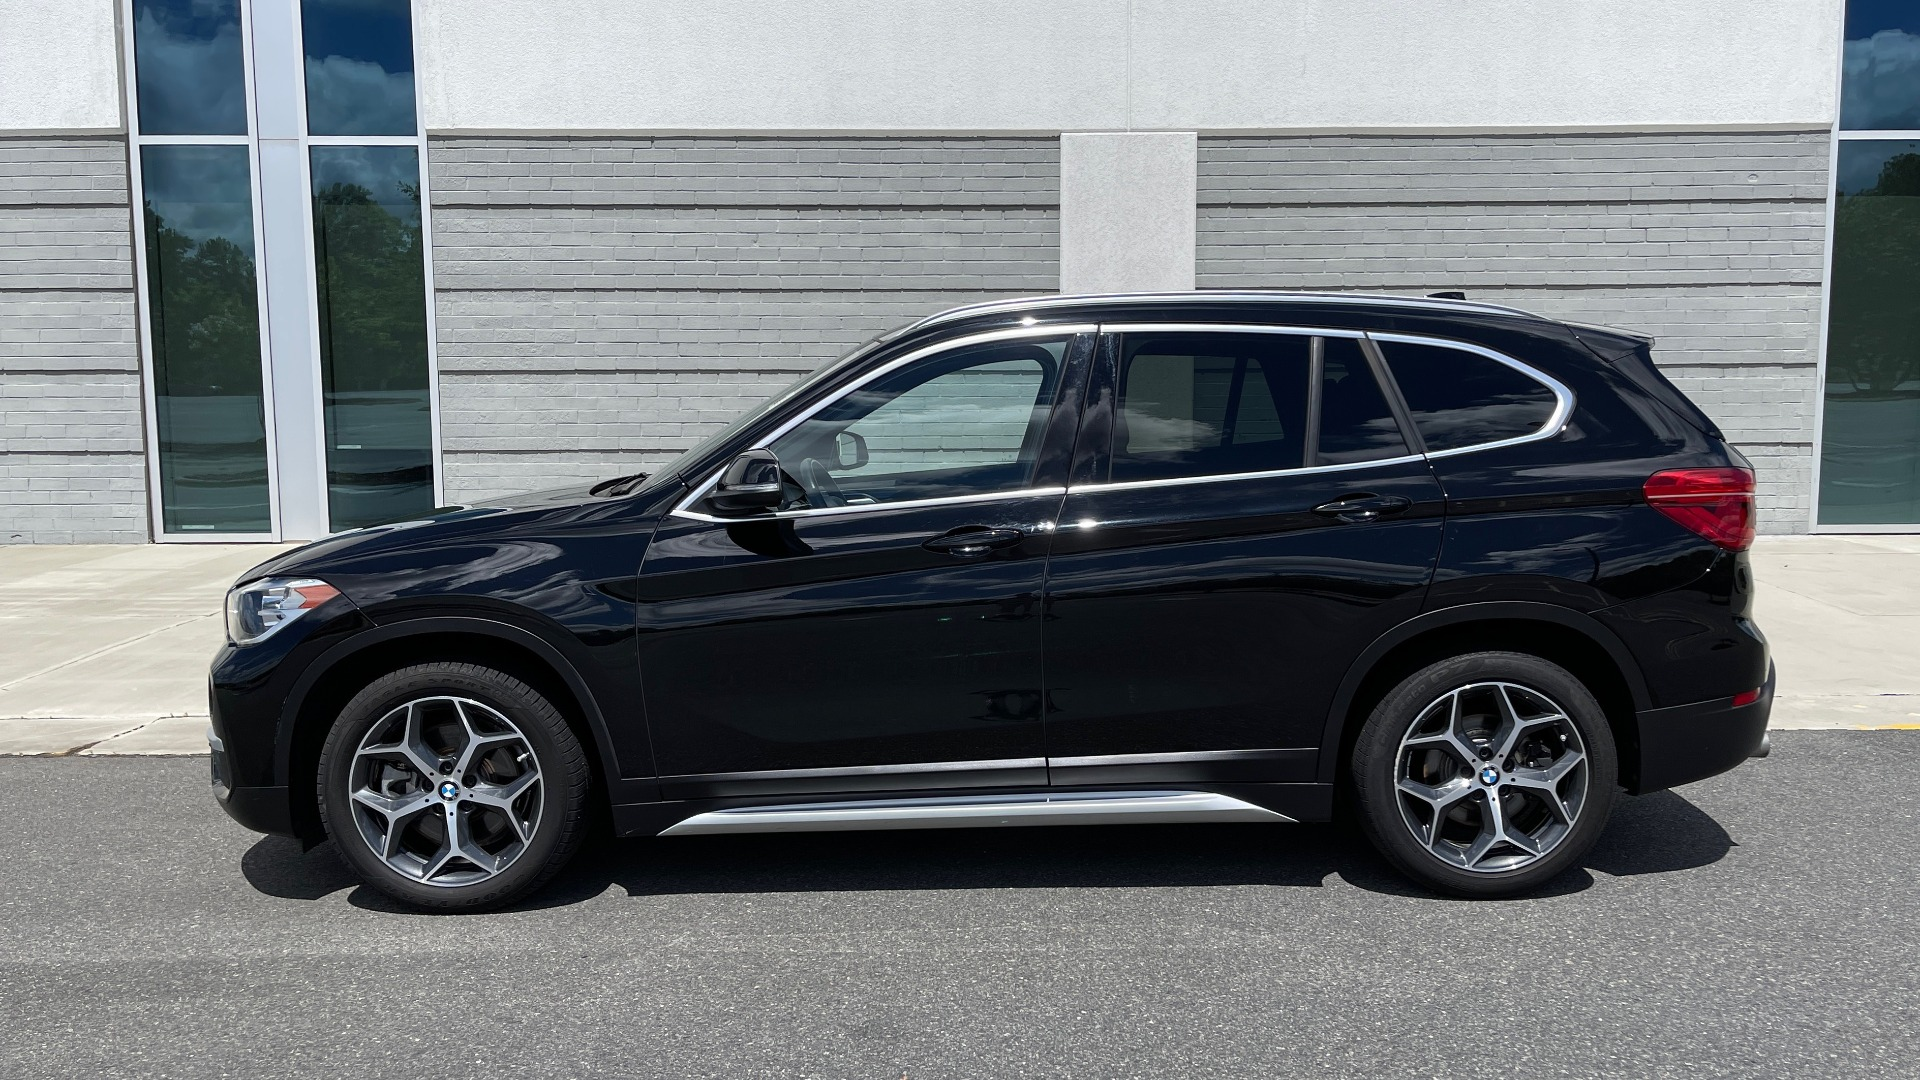 Used 2018 BMW X1 XDRIVE28I / 2.0L / AWD / 8-SPD AUTO / REARVIEW for sale $29,395 at Formula Imports in Charlotte NC 28227 4